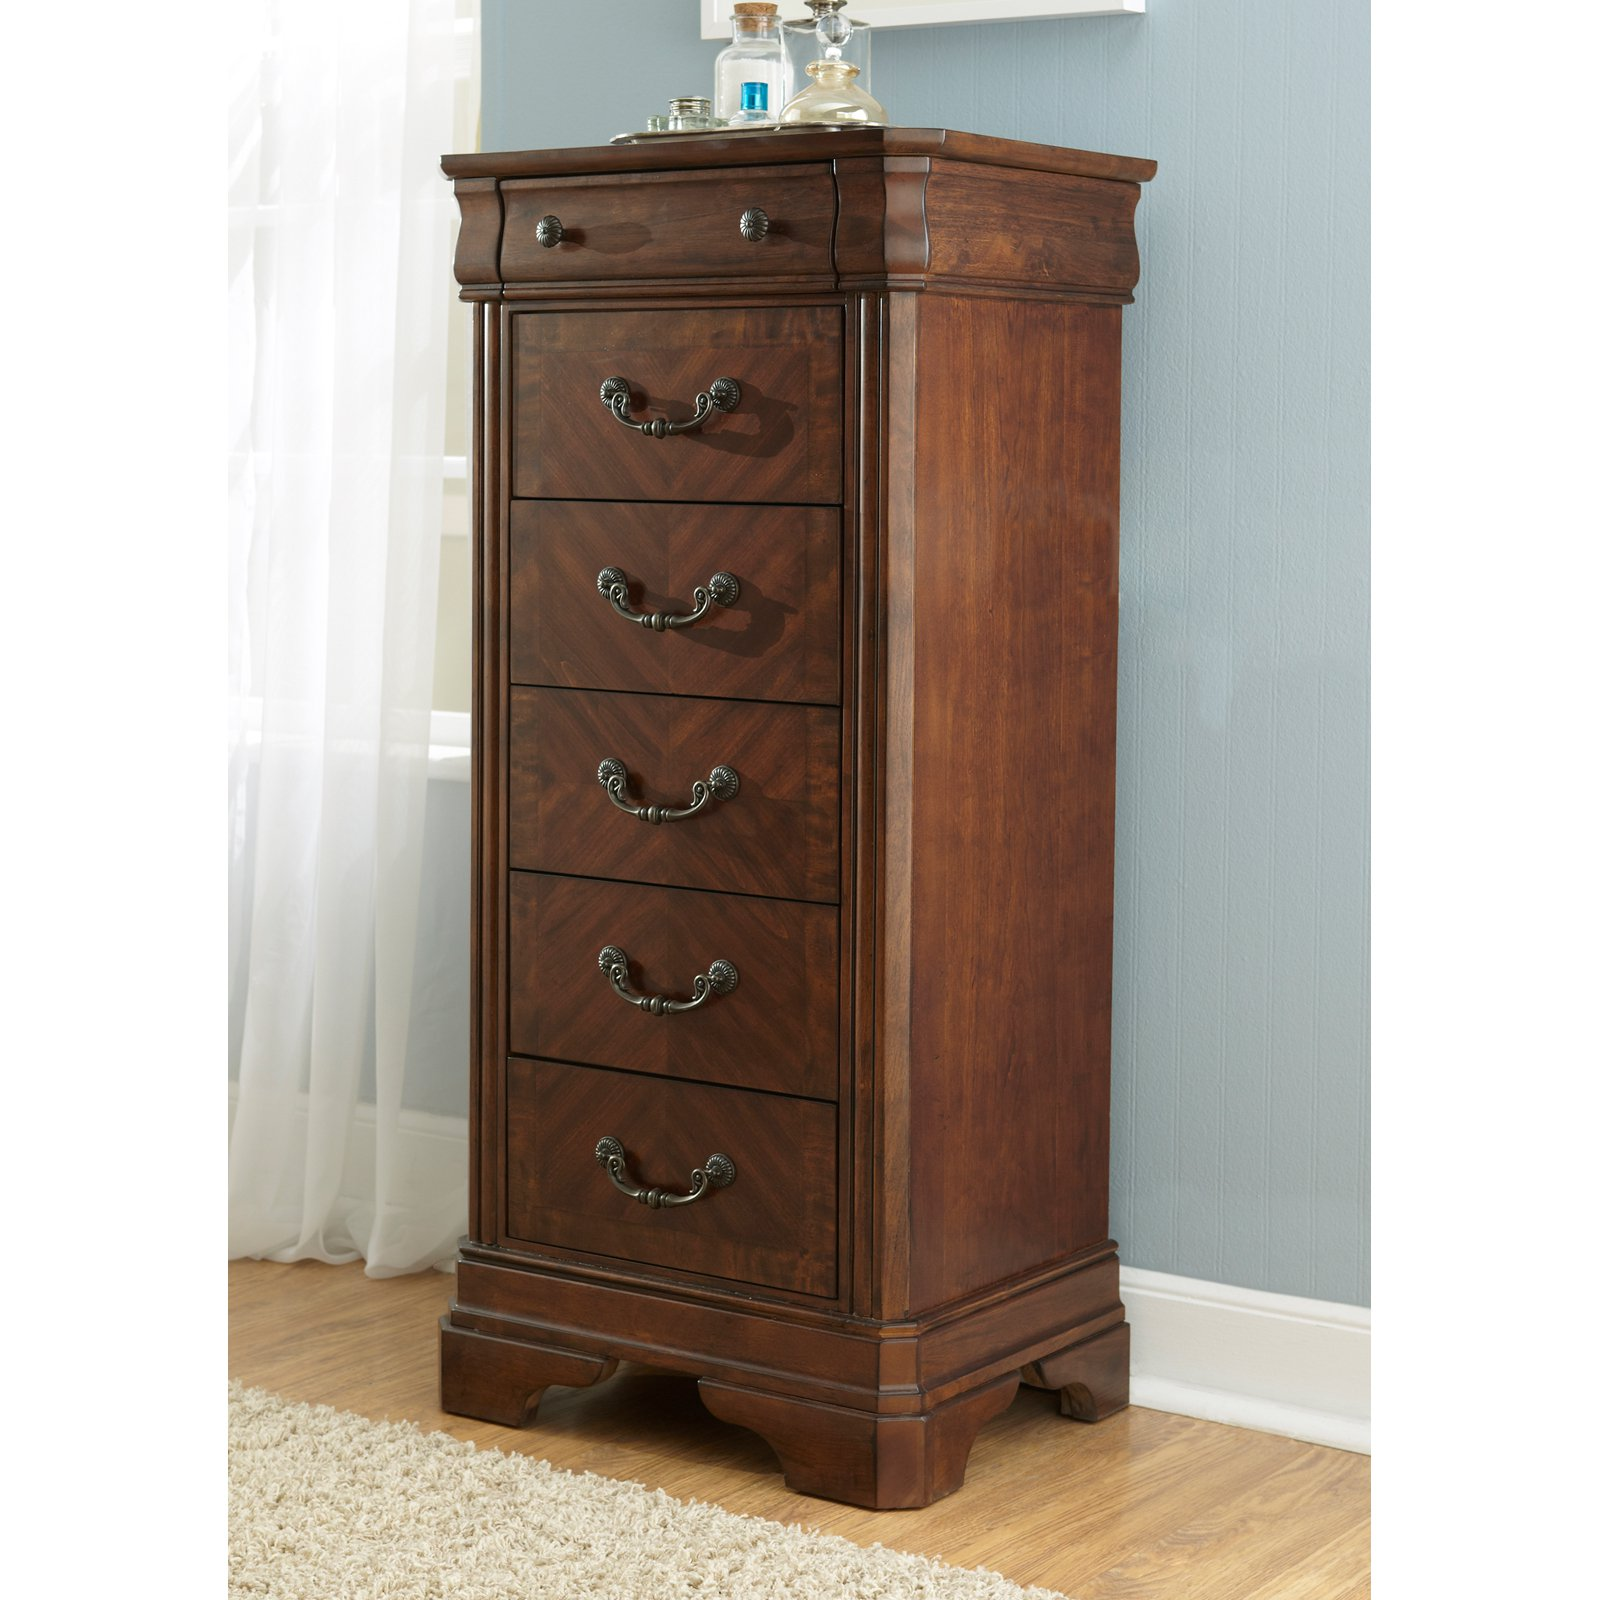 Liberty Furniture Alexandria 6 Drawer Lingerie Chest - Autumn Brown